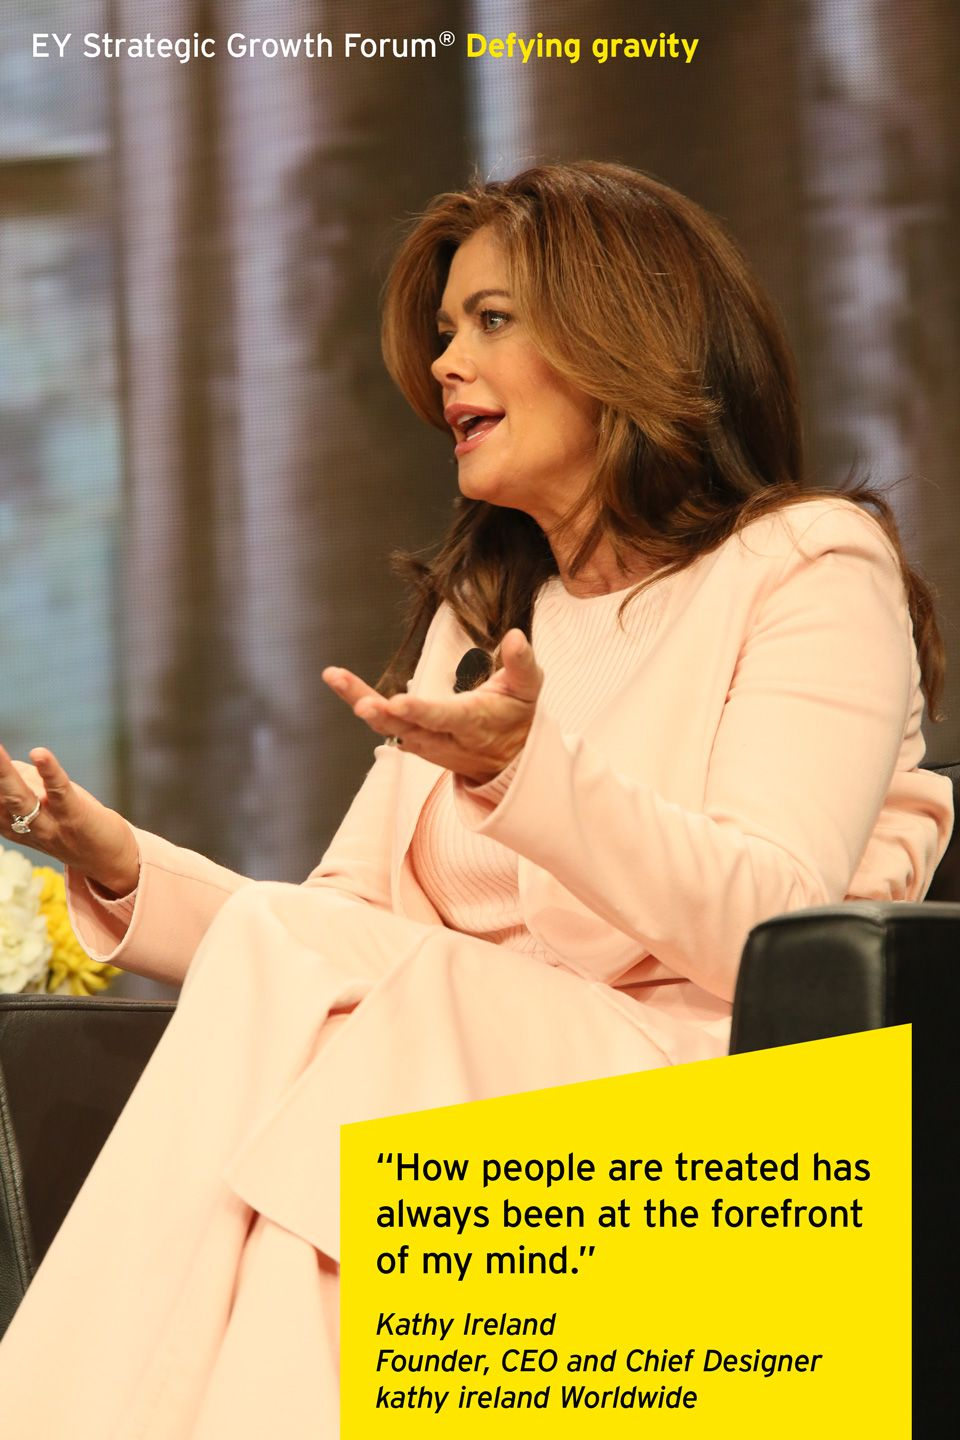 Kathy Ireland, Founder, CEO and Chief Designer of kathy ireland Worldwide®, interviewed by Moira Forbes, President & Publisher of ForbesWoman, at the EY Strategic Growth Forum®, November 13-17, 2013 Palm Springs, California. #businessquotes